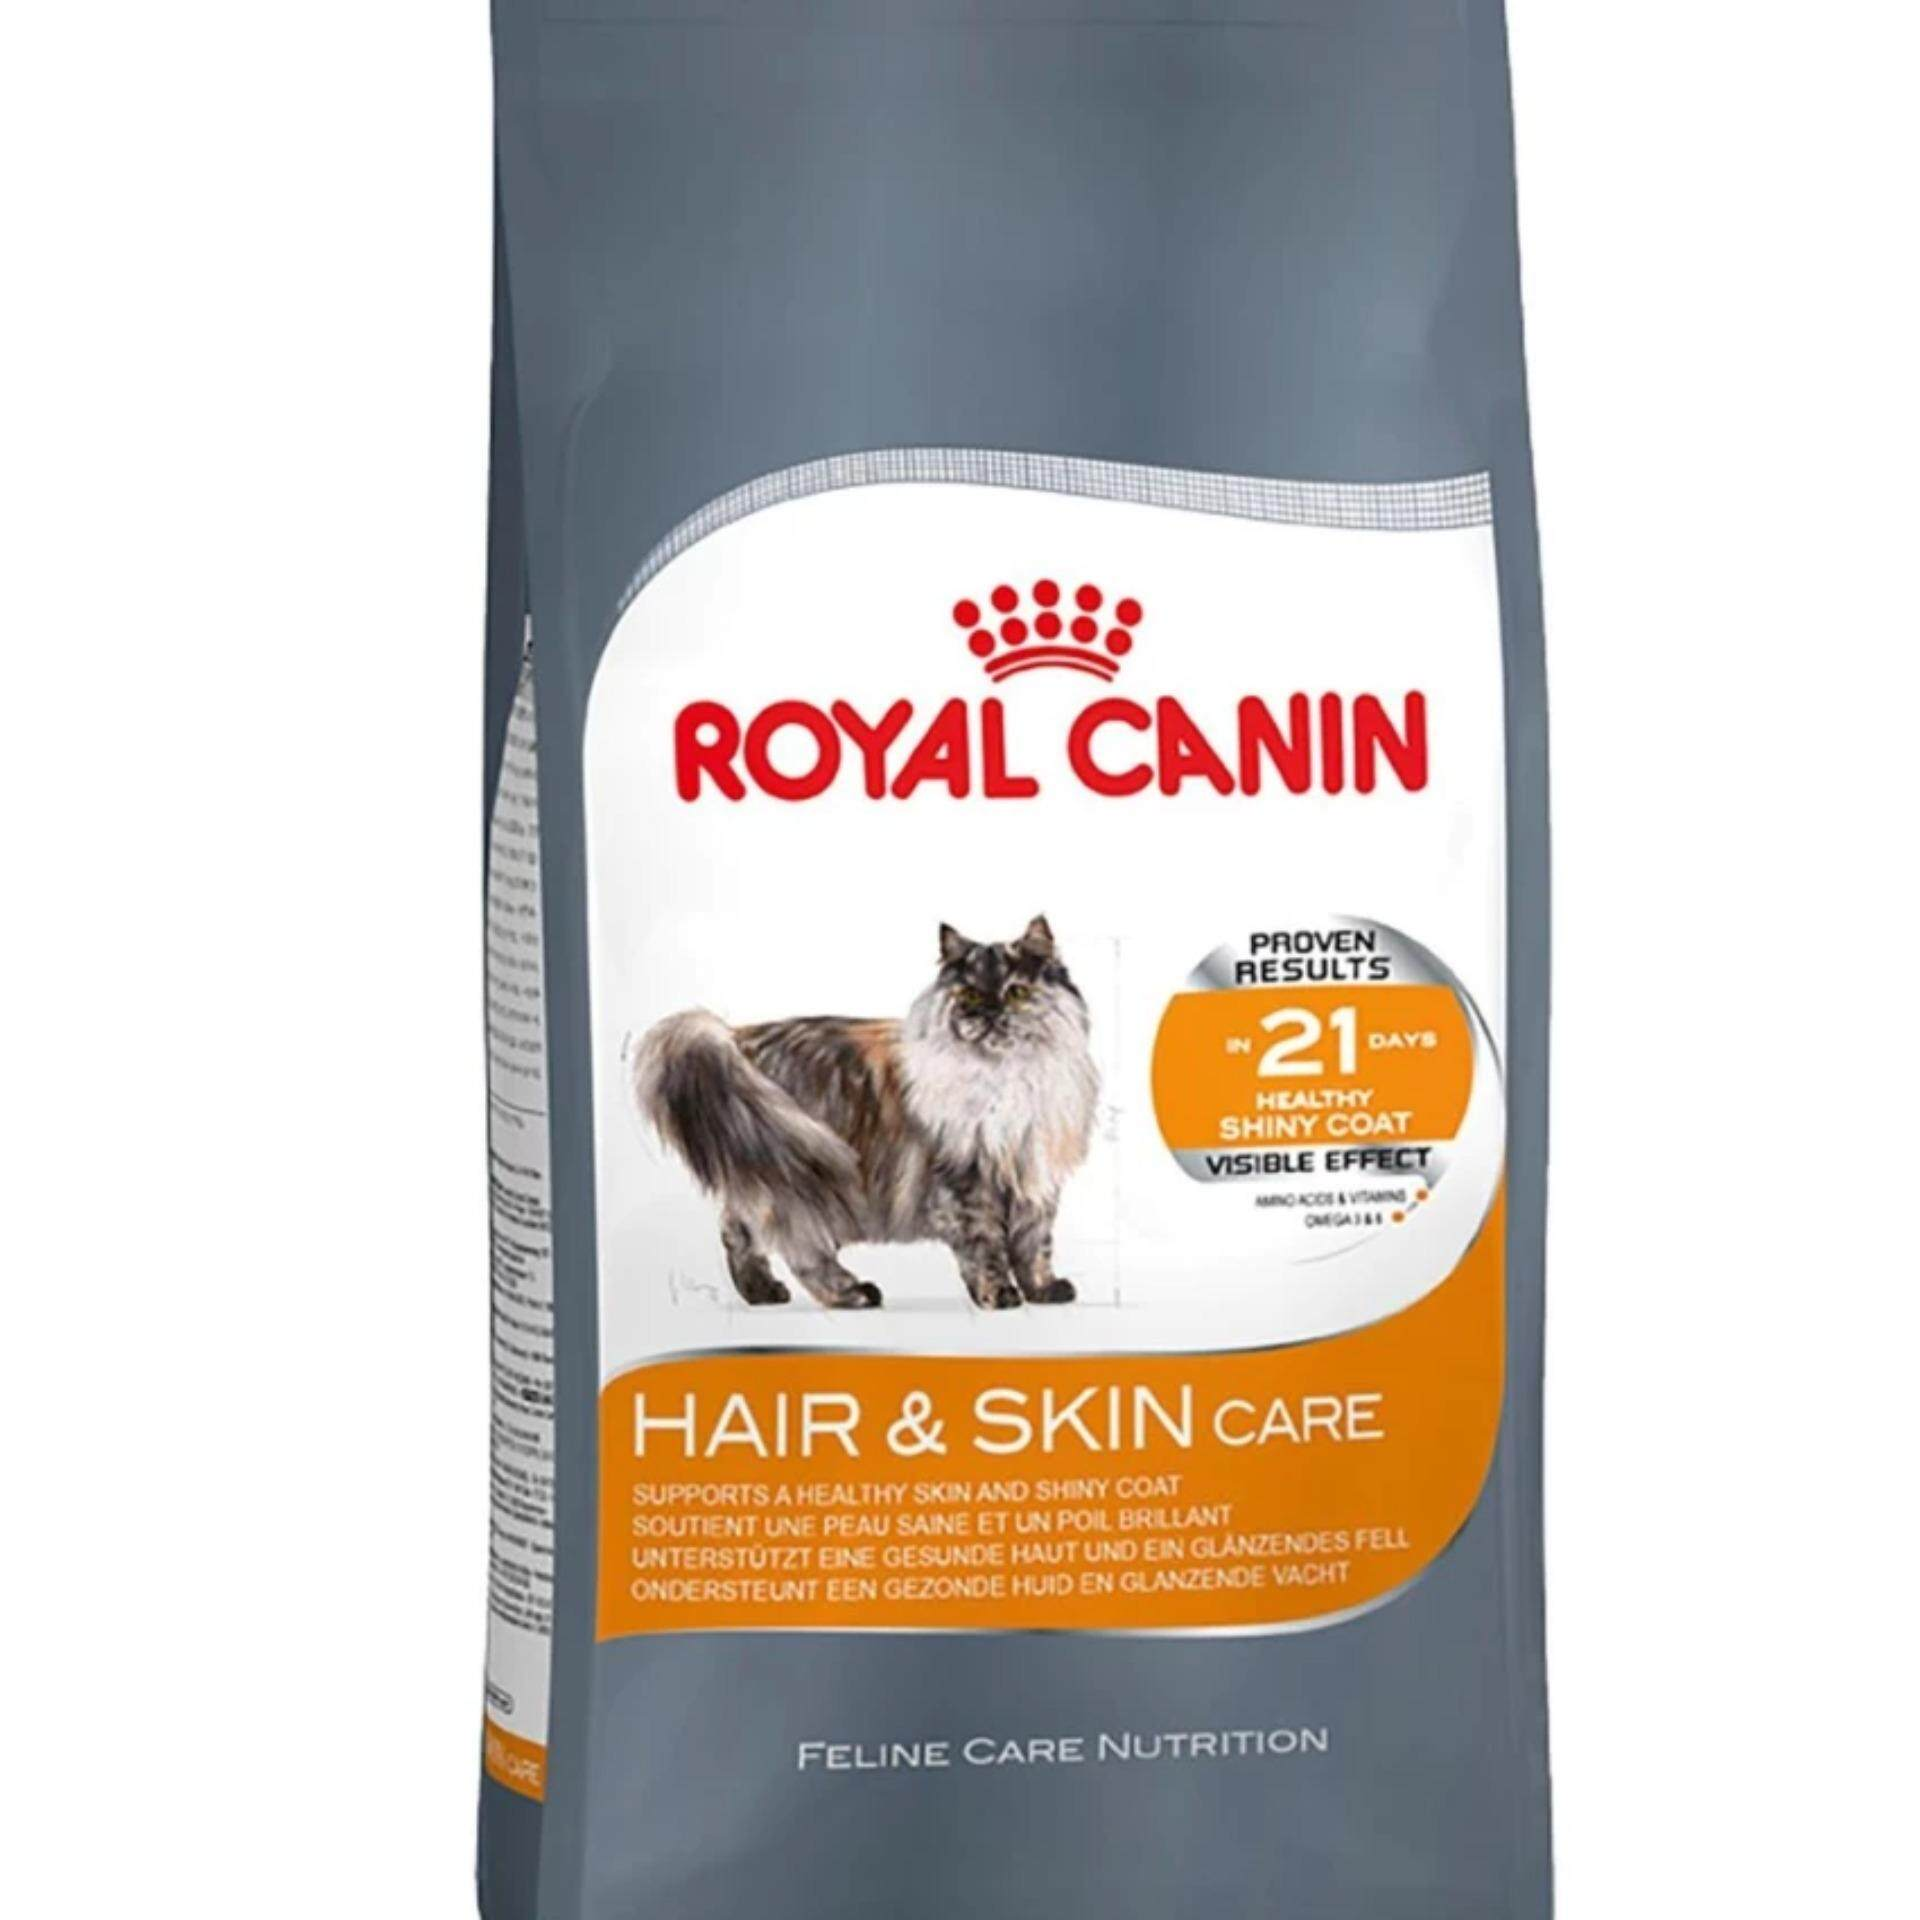 Royal Canin Hair & Skin Care (10KG)